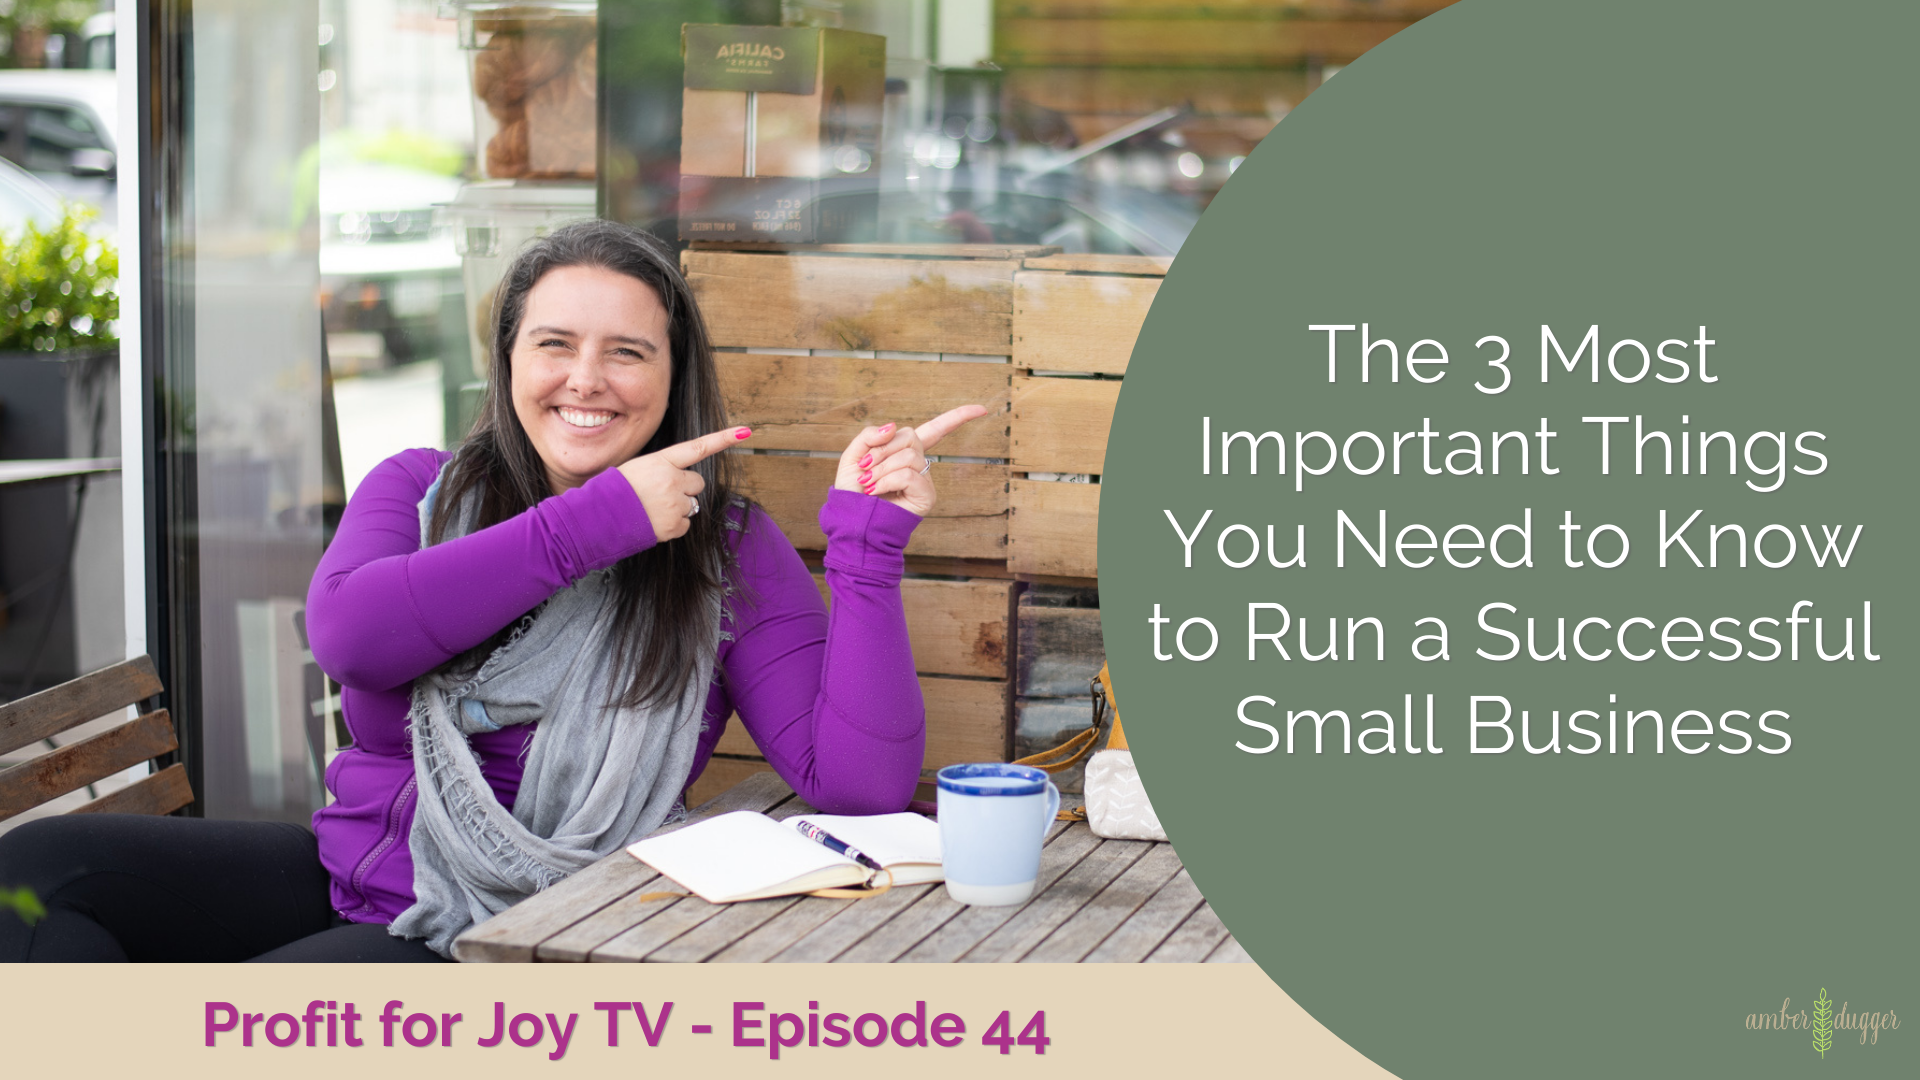 The 3 Most Important Things You Need to Know to Run a Successful Small Business